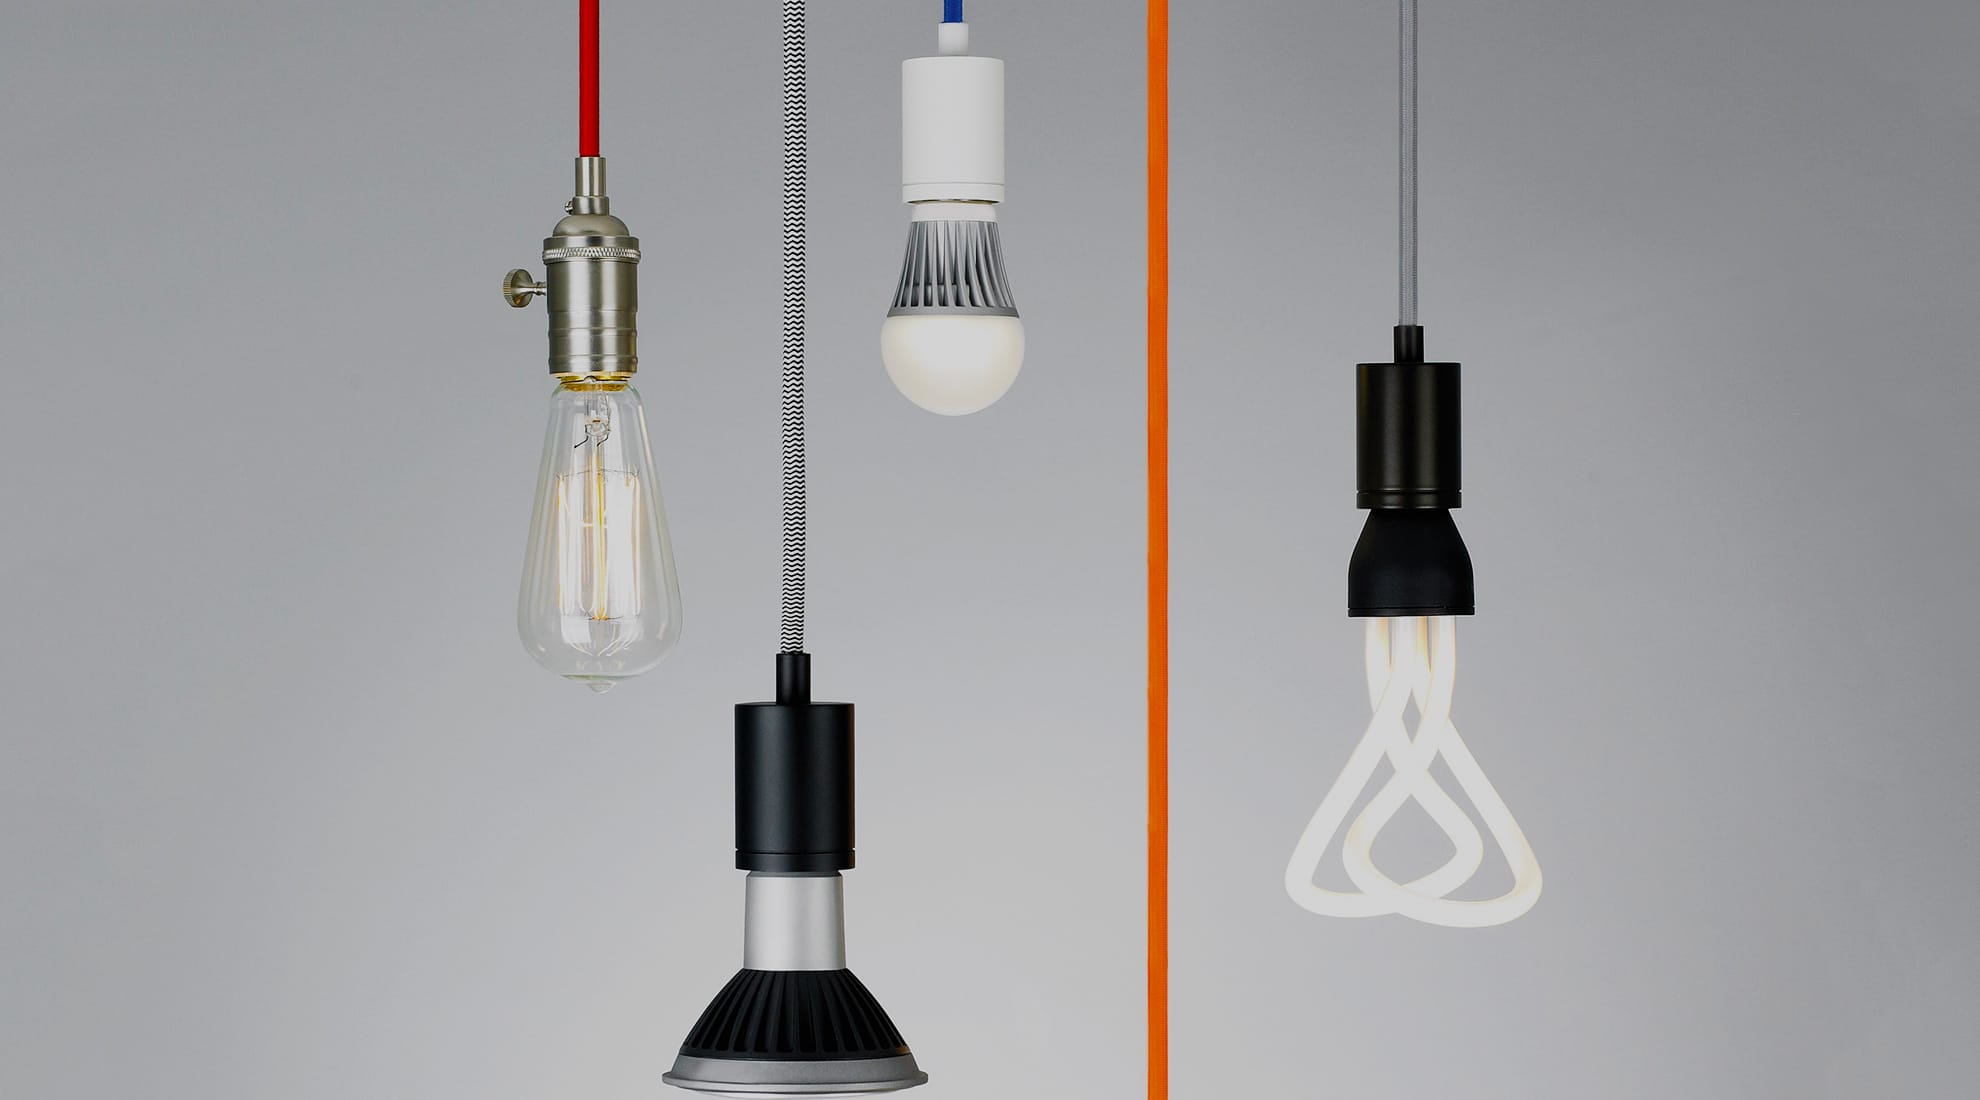 Lamp Bulb Types Of Light Bulbs Differences In Light Bulbs At Lumens